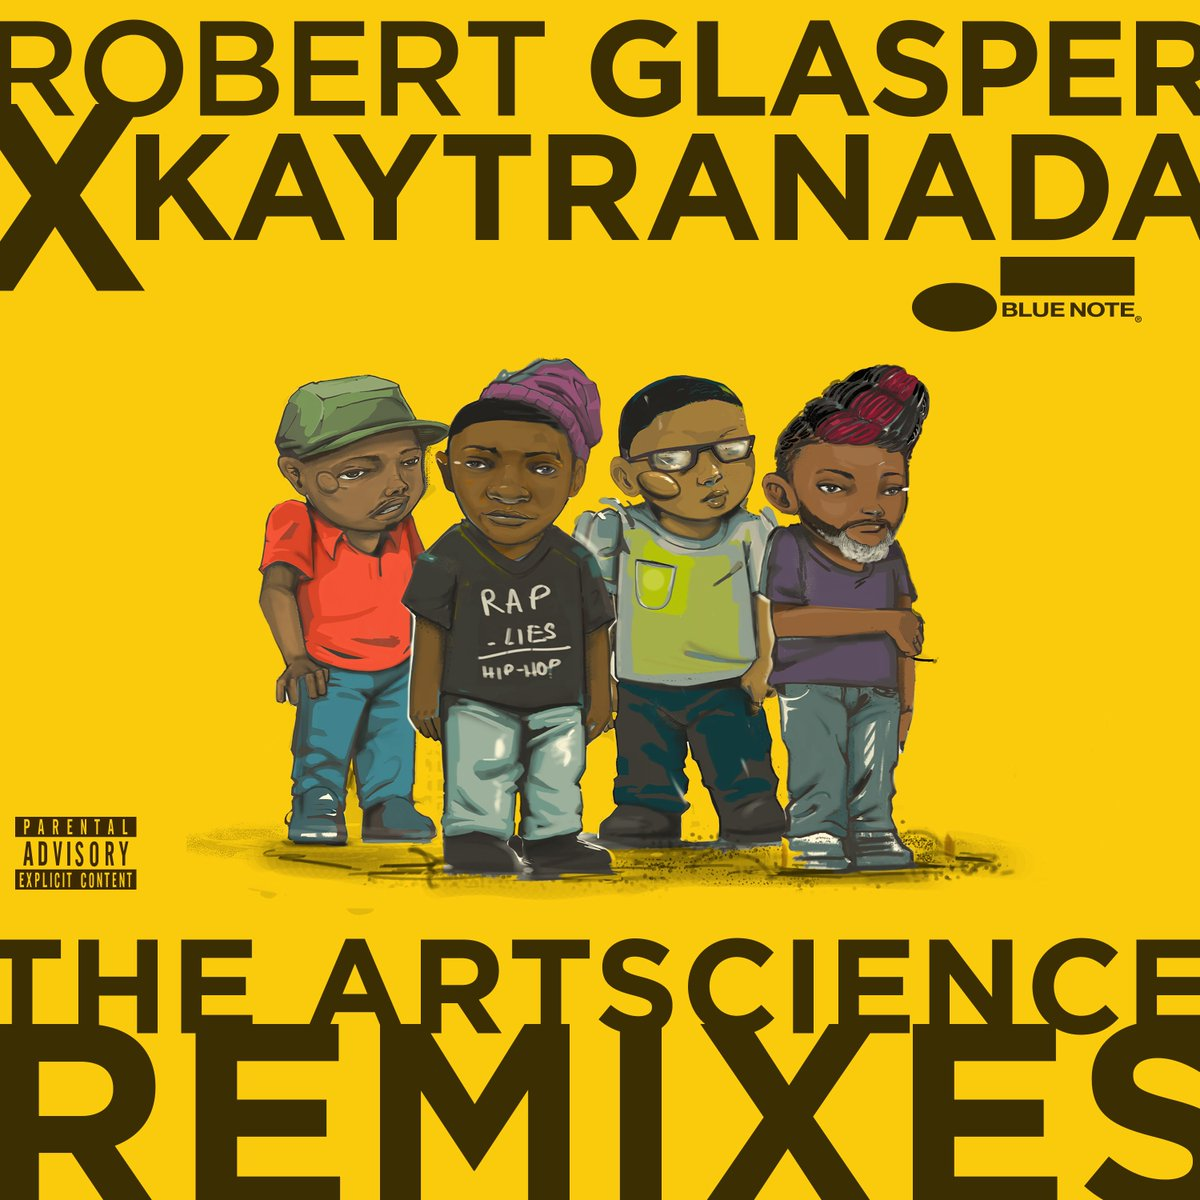 """""""The Artscience Remixes moves with the freewheeling rhythm of a beat tape. The drums are crisp and the keys flow like liquid gold.""""—Pitchfork  Exclusive @recordstoreday vinyl of @robertglasper x @KAYTRANADA 'The ArtScience Remixes' out 4/21! Stream/DL now: https://t.co/AzFqmBAiv5"""